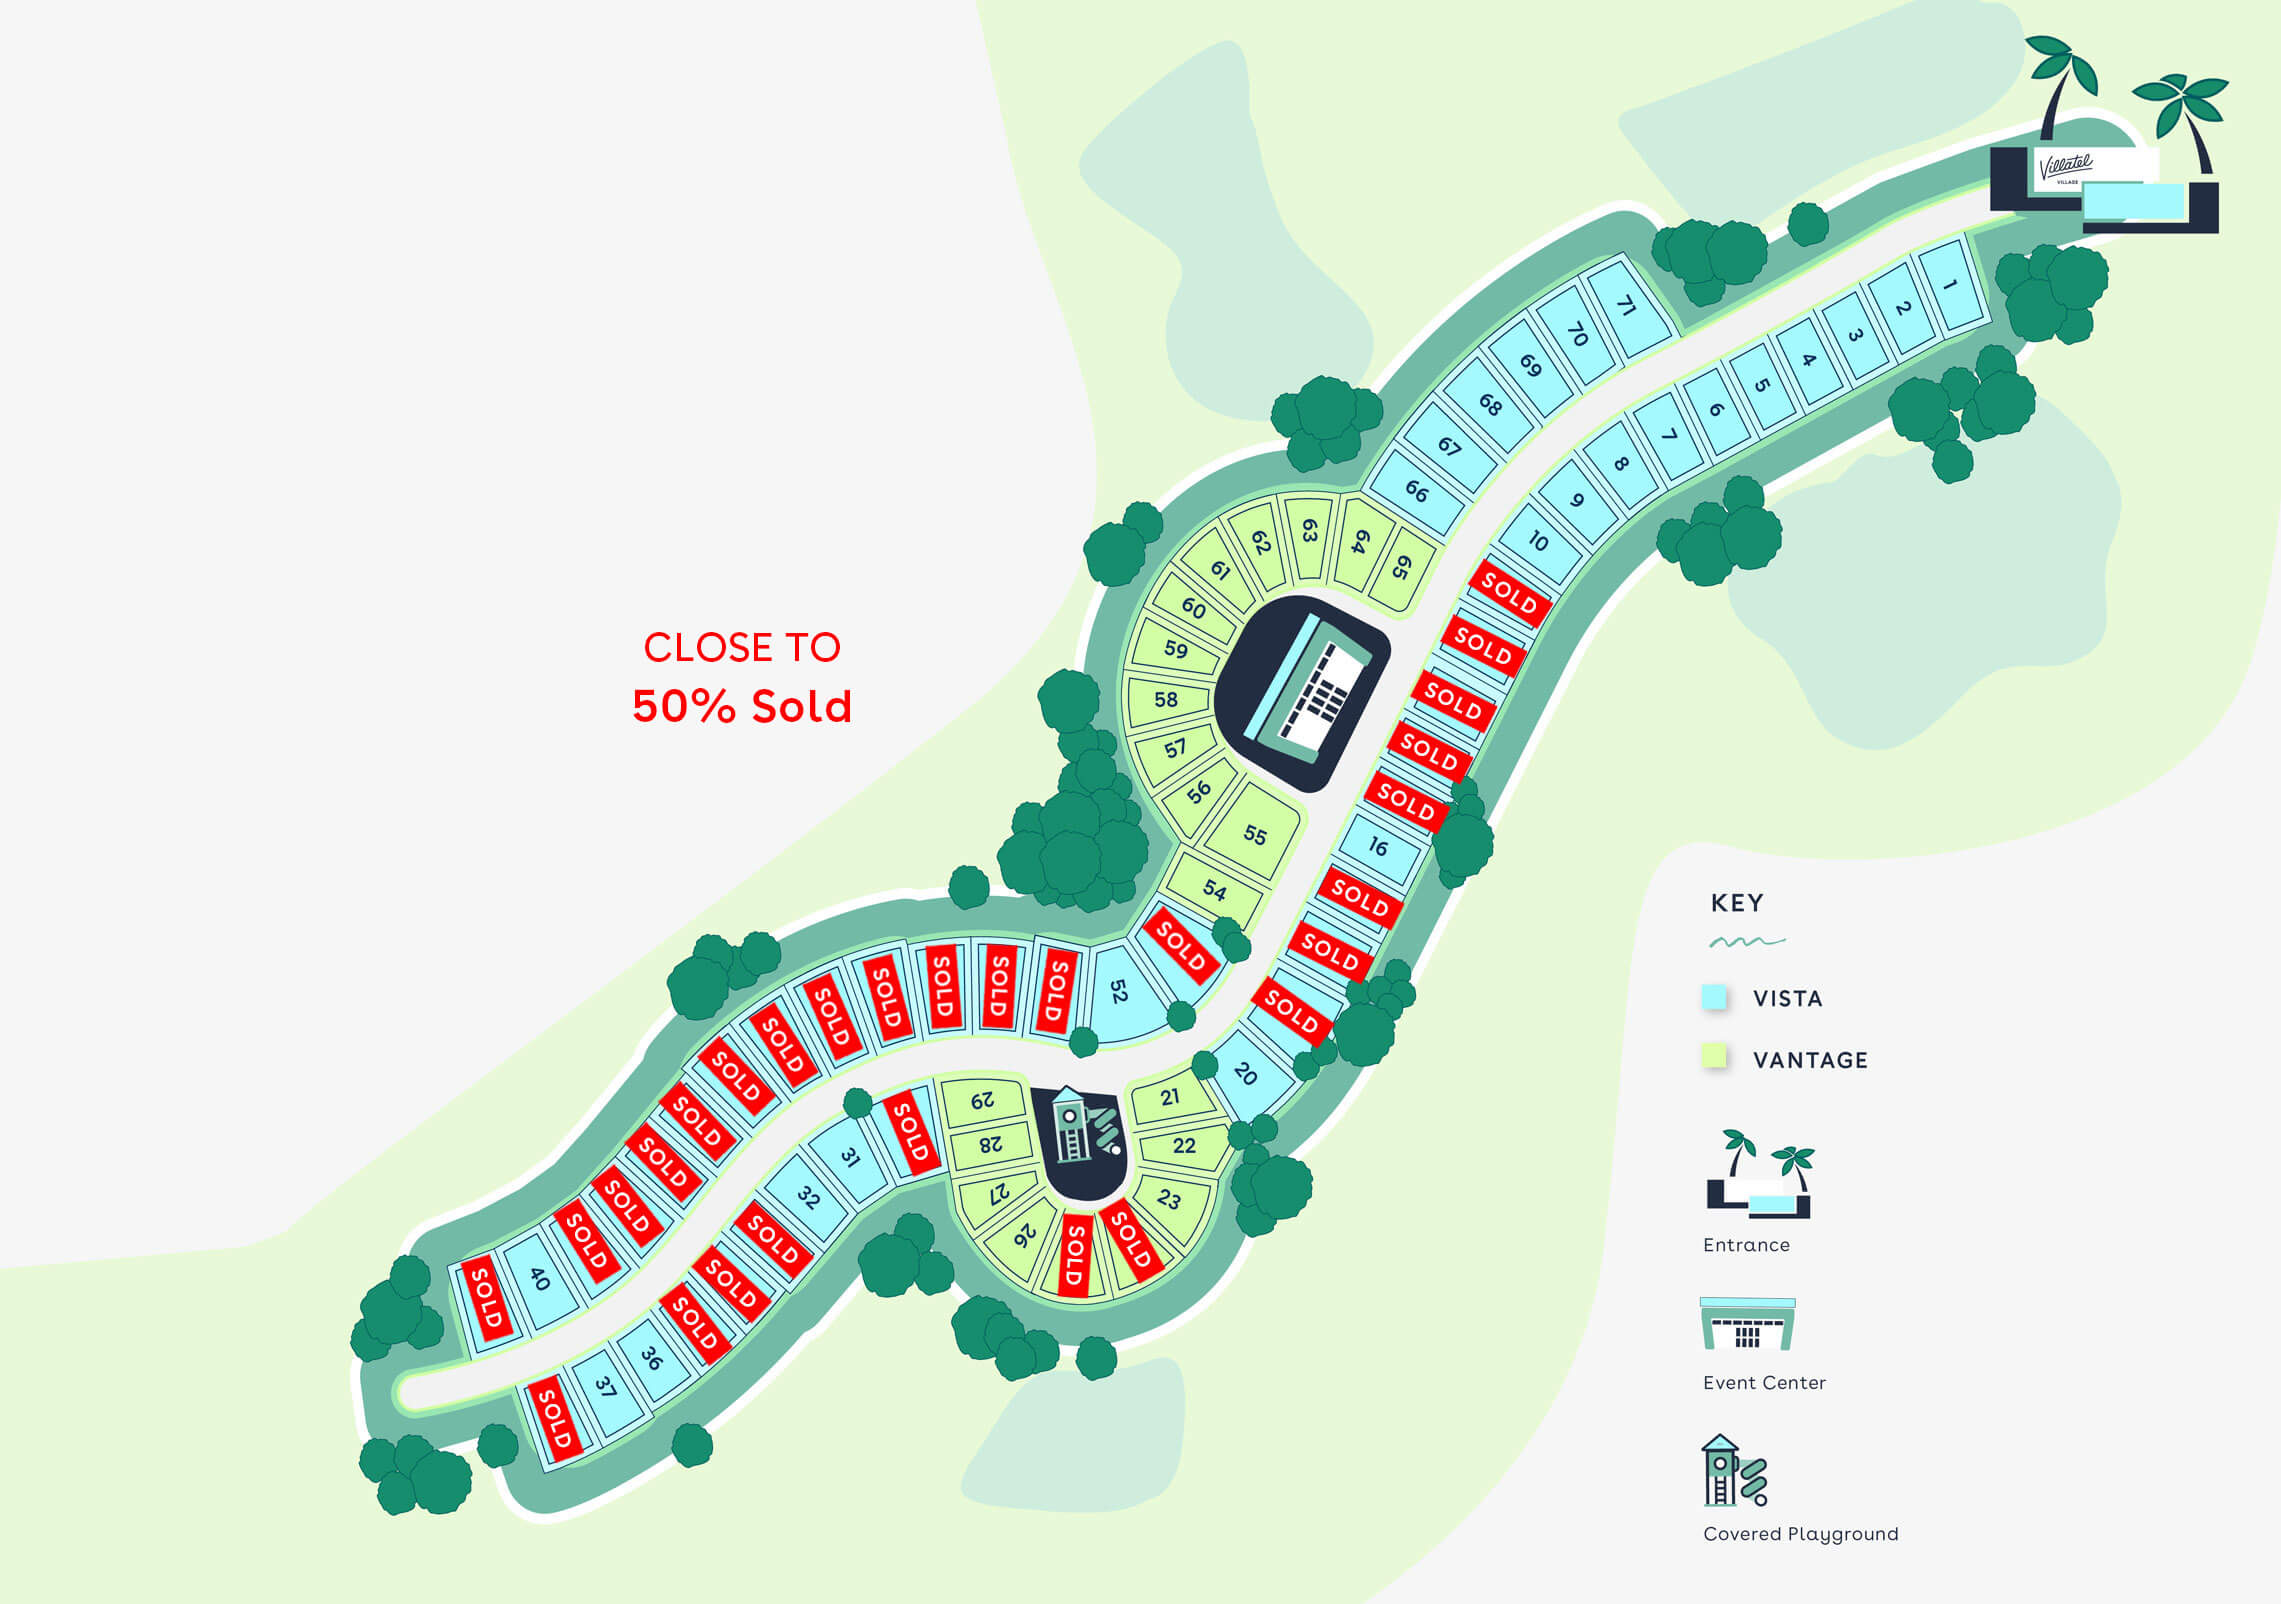 Site map of Villatel Village featuring 50% sold out status and indications of which lots are taken